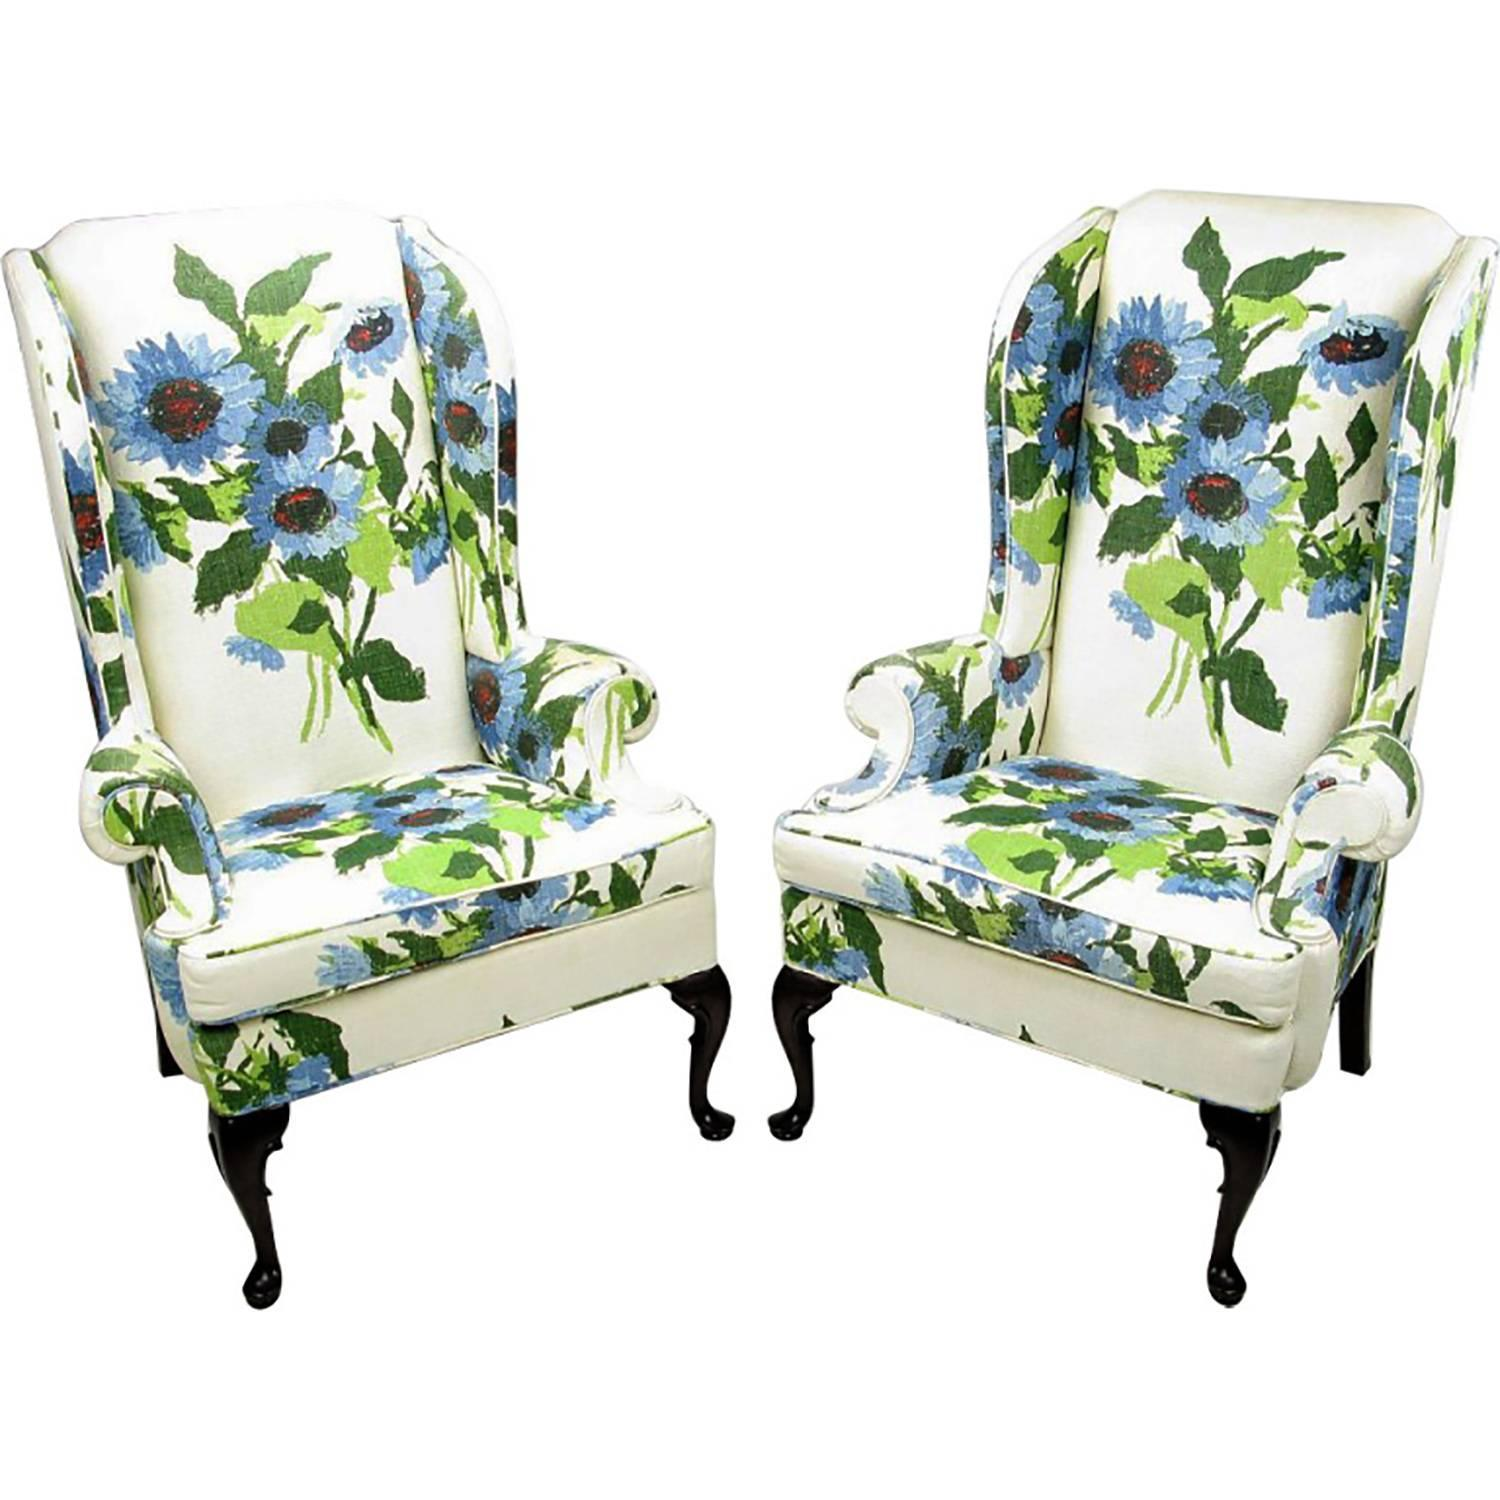 Pair of Elegant and Bold Floral Linen Upholstered Wing Chairs by